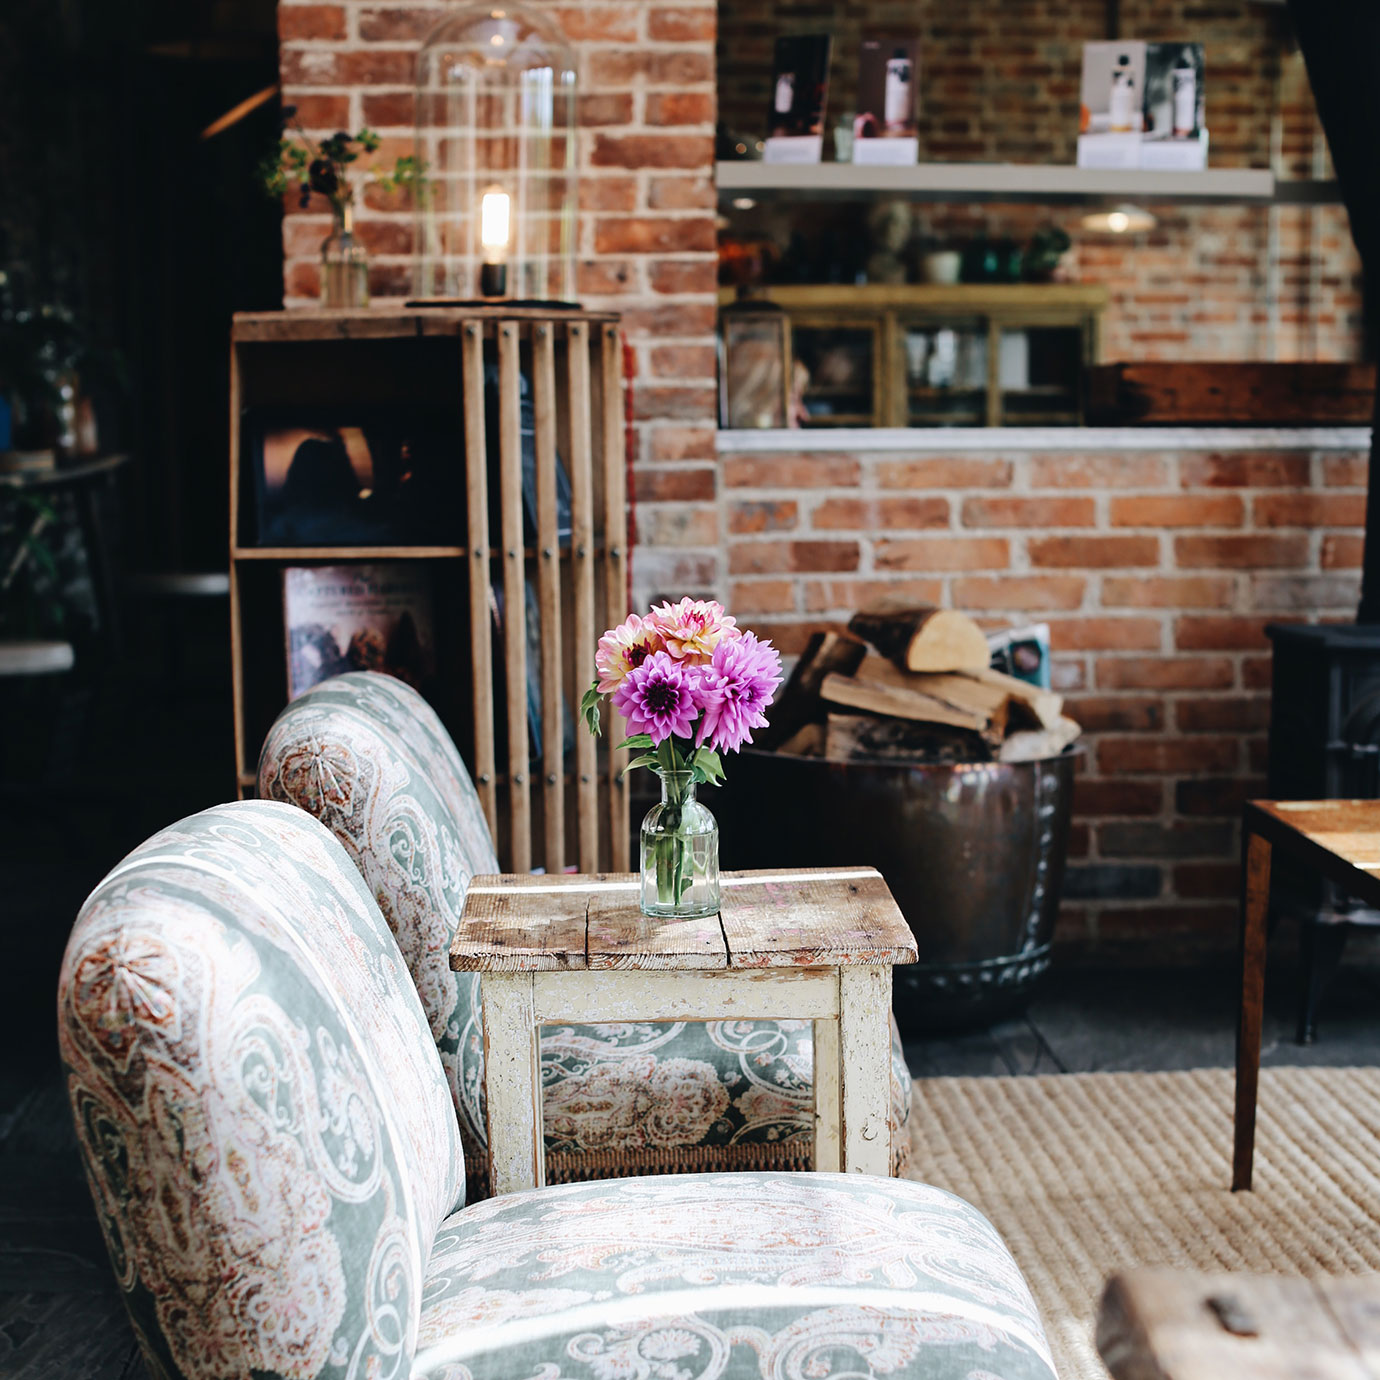 Two chairs and a vase of flowers on a table.